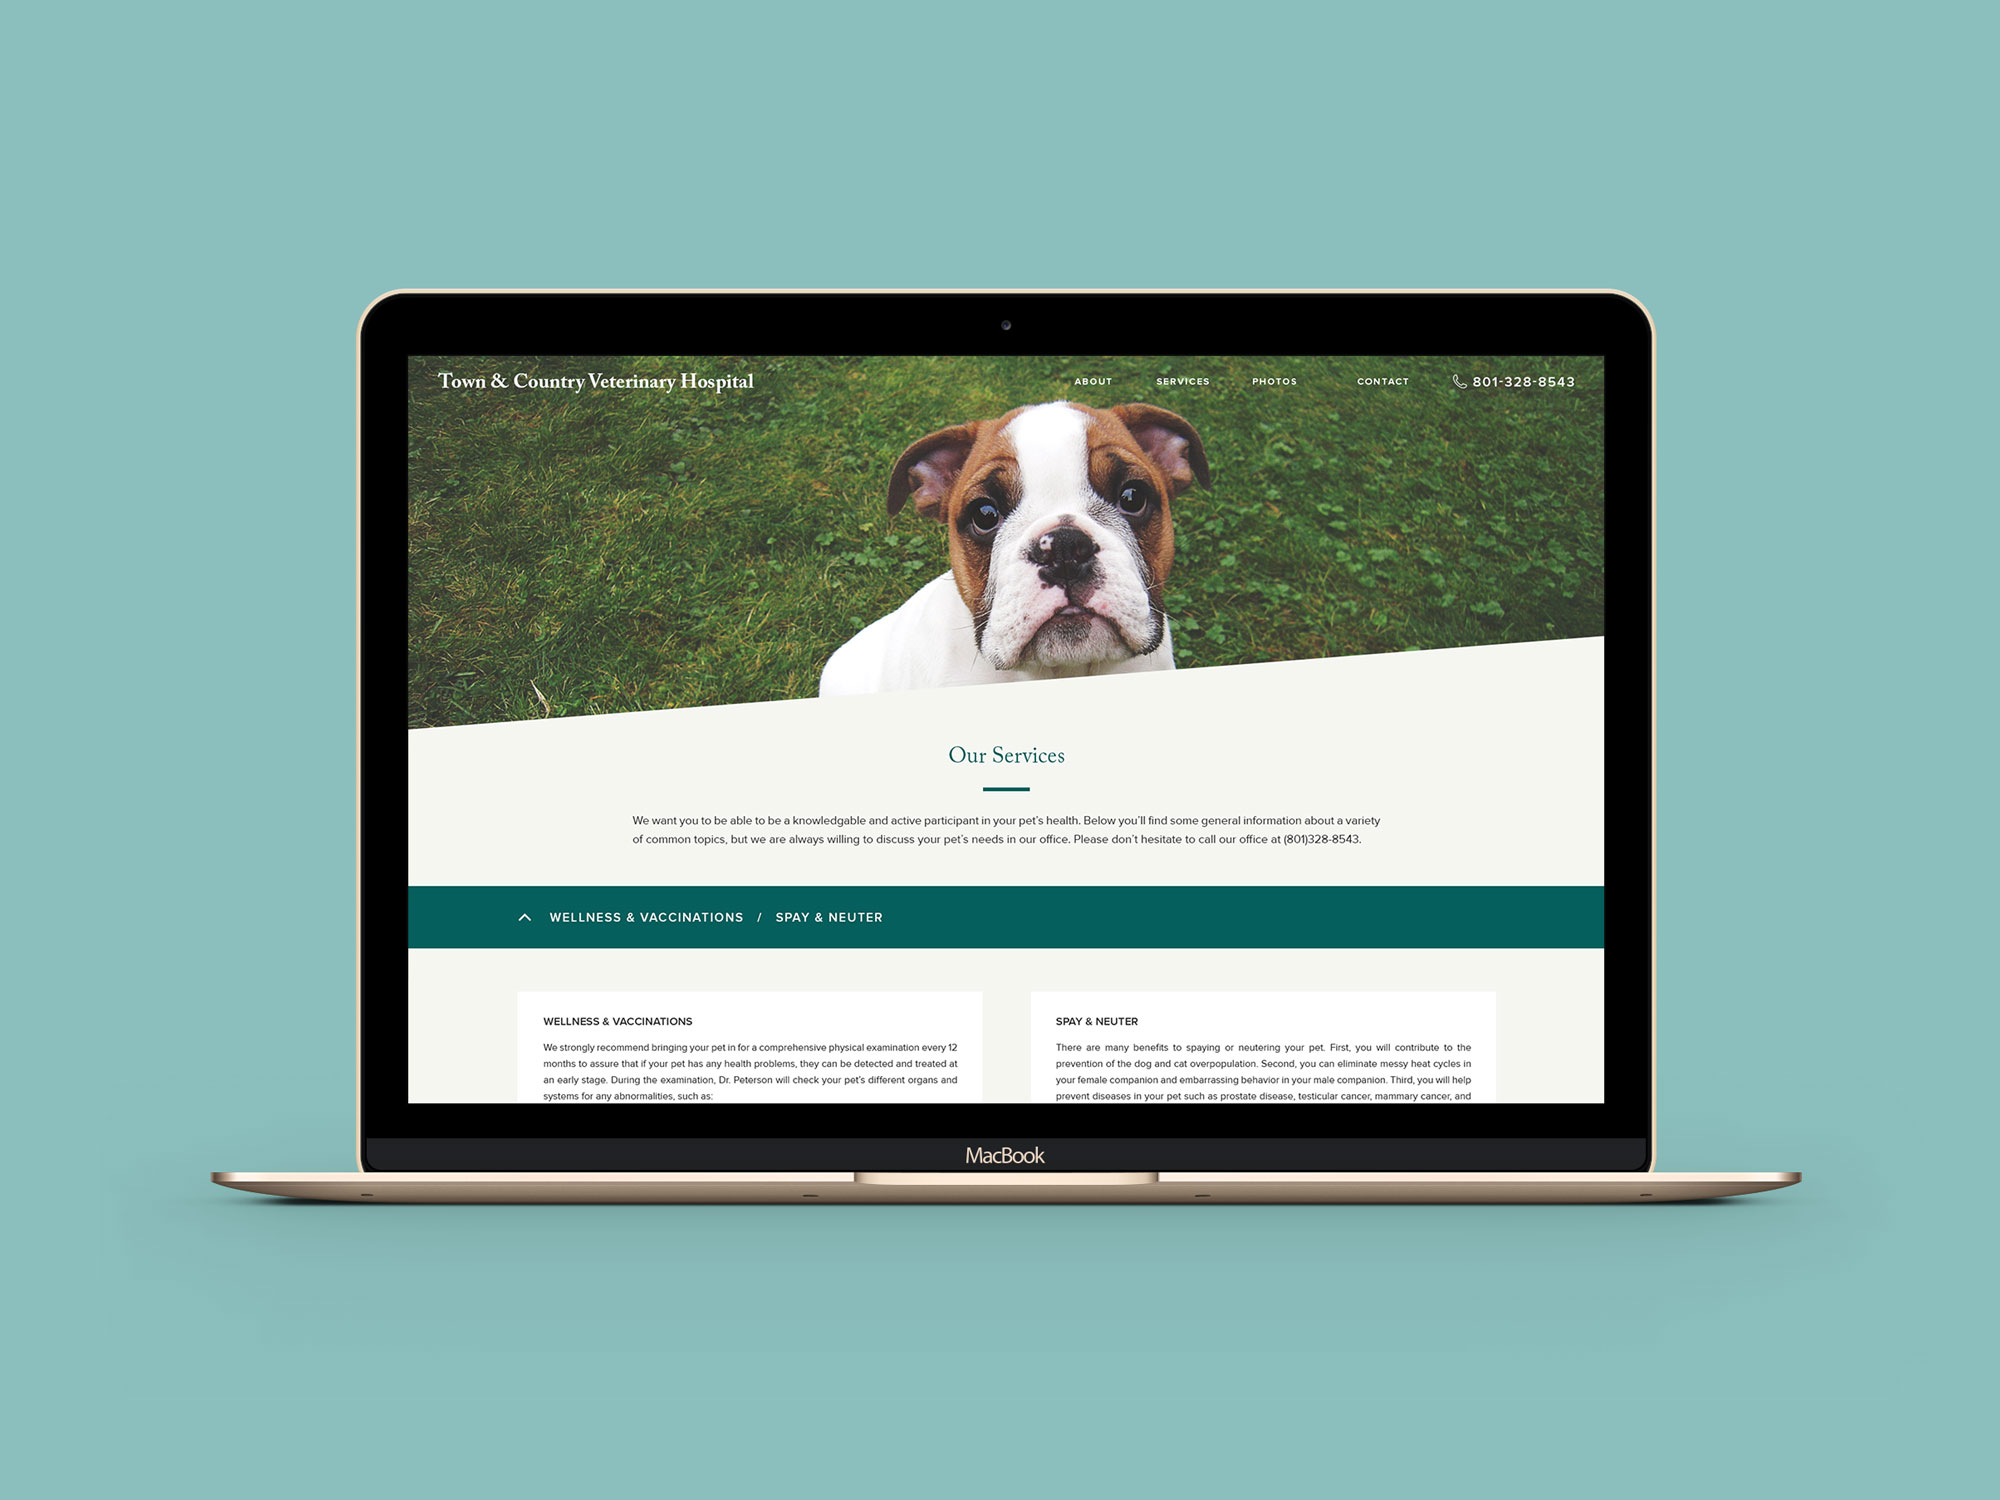 Town-and-Country-Veterinary-Hospital-website-3.jpg